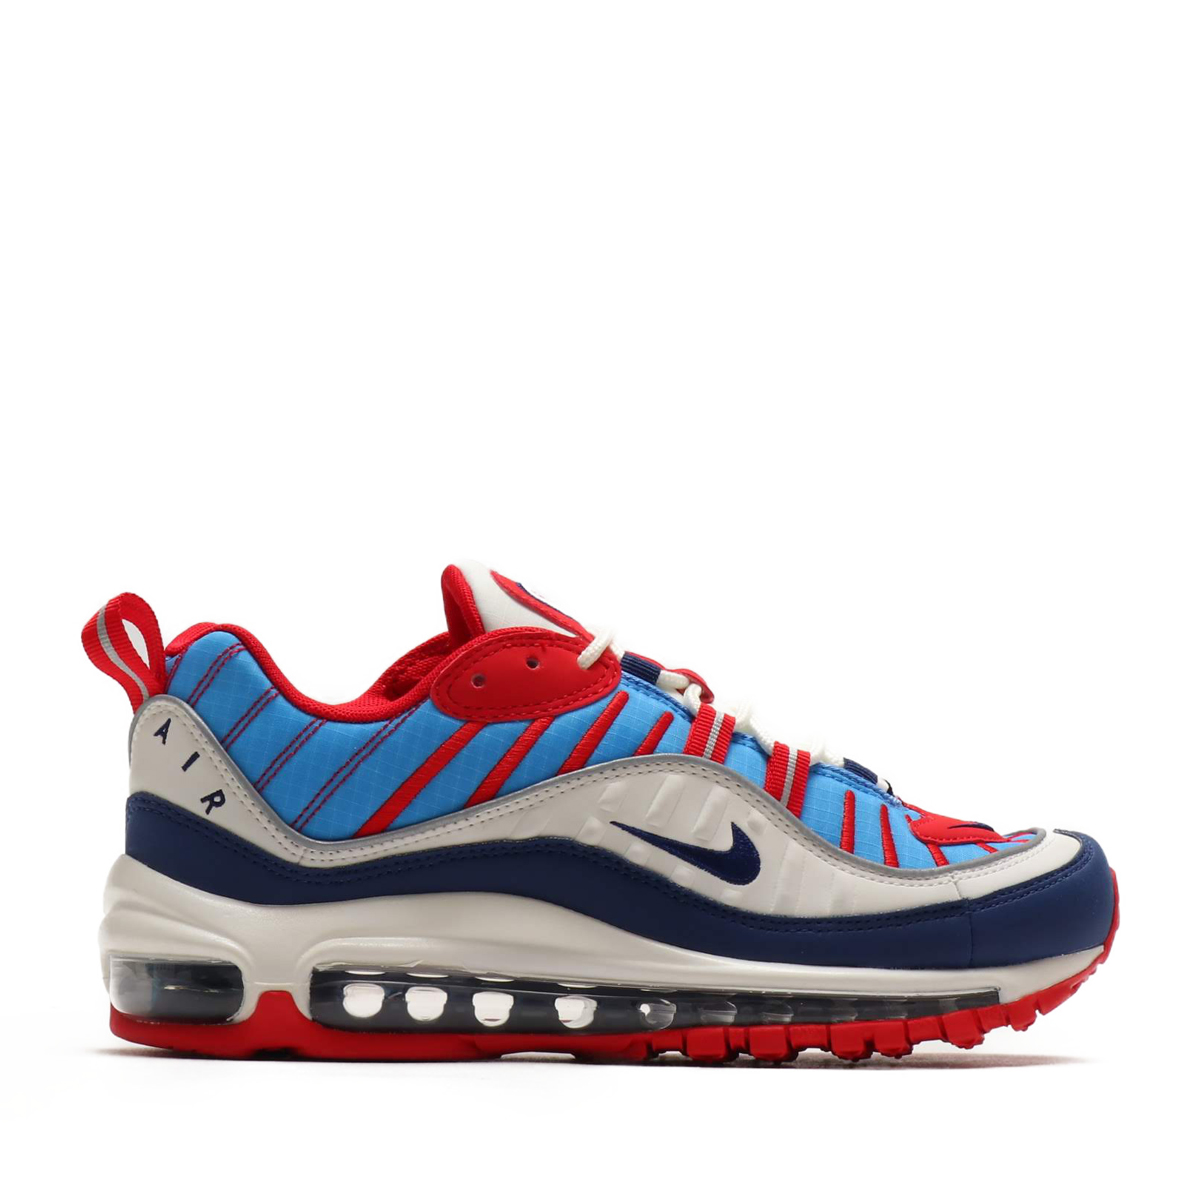 finest selection a8ed6 e2707 NIKE W AIR MAX 98 (SMMT WHT BL VD-UNV RD-RFLCT SL) (Nike women Air Max 98)